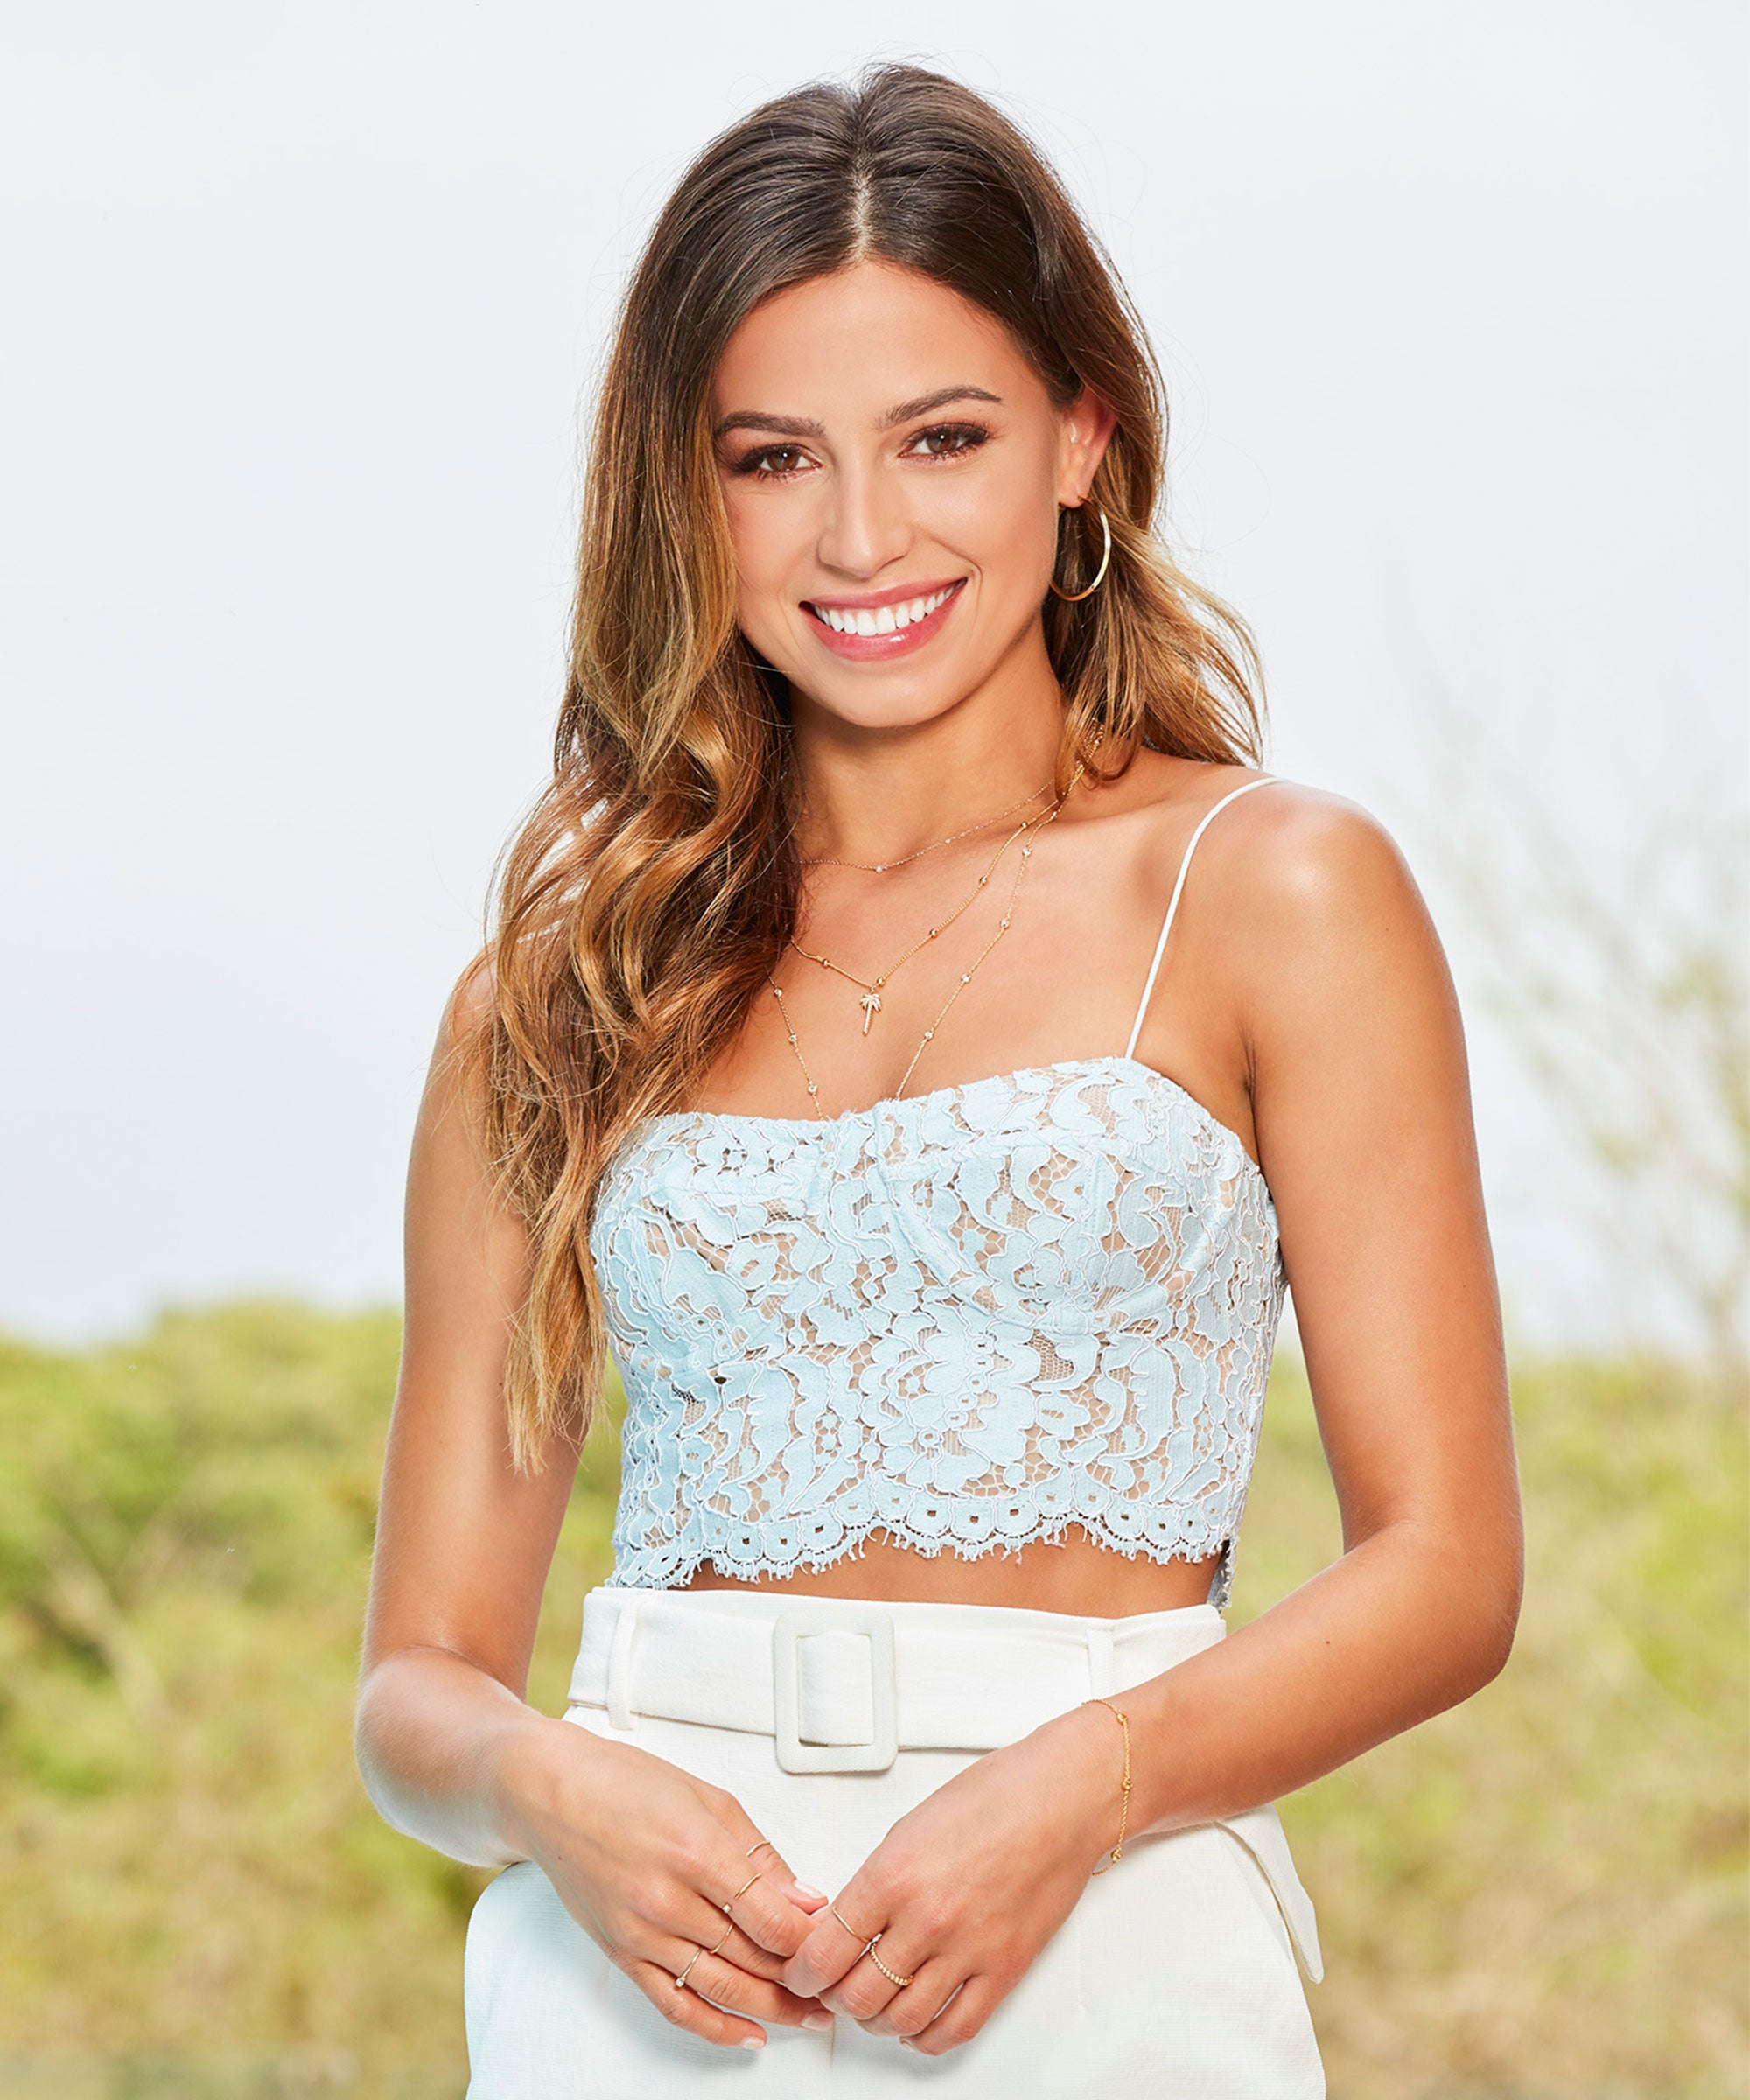 How Are Blake & Kristina After Bachelor In Paradise?